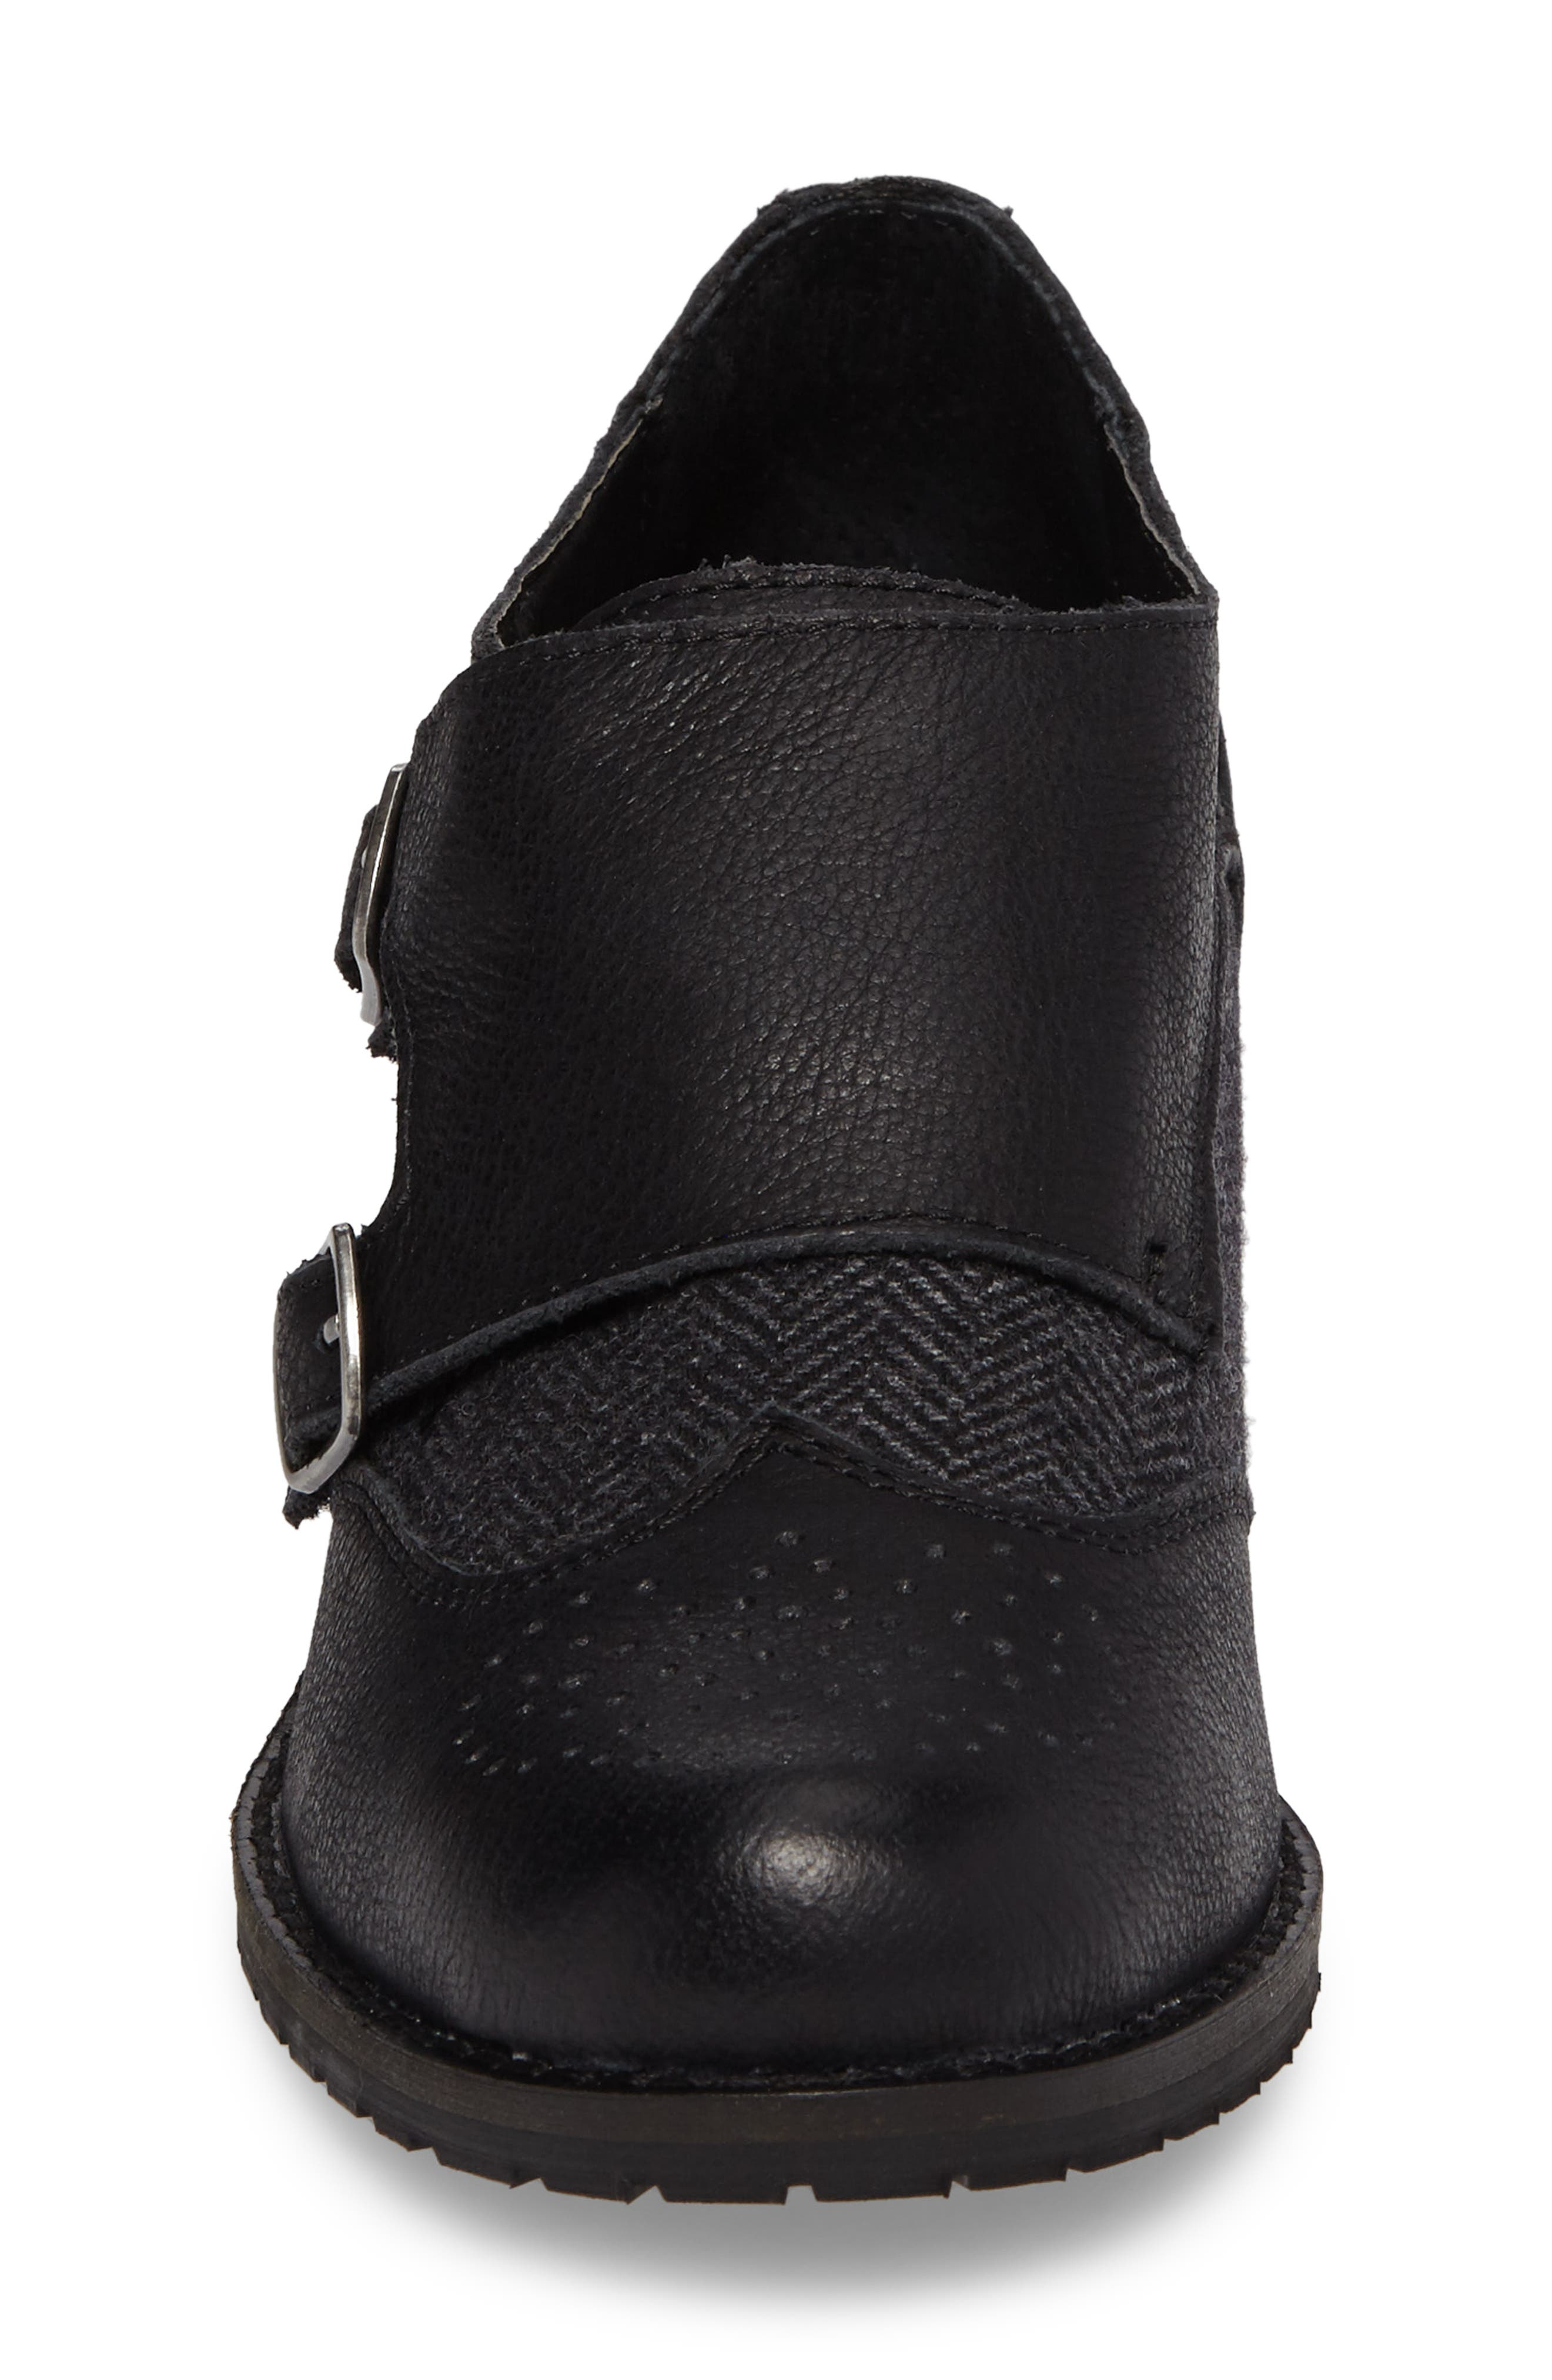 Dina Double Monk Strap Ankle Boot,                             Alternate thumbnail 4, color,                             BLACK LEATHER